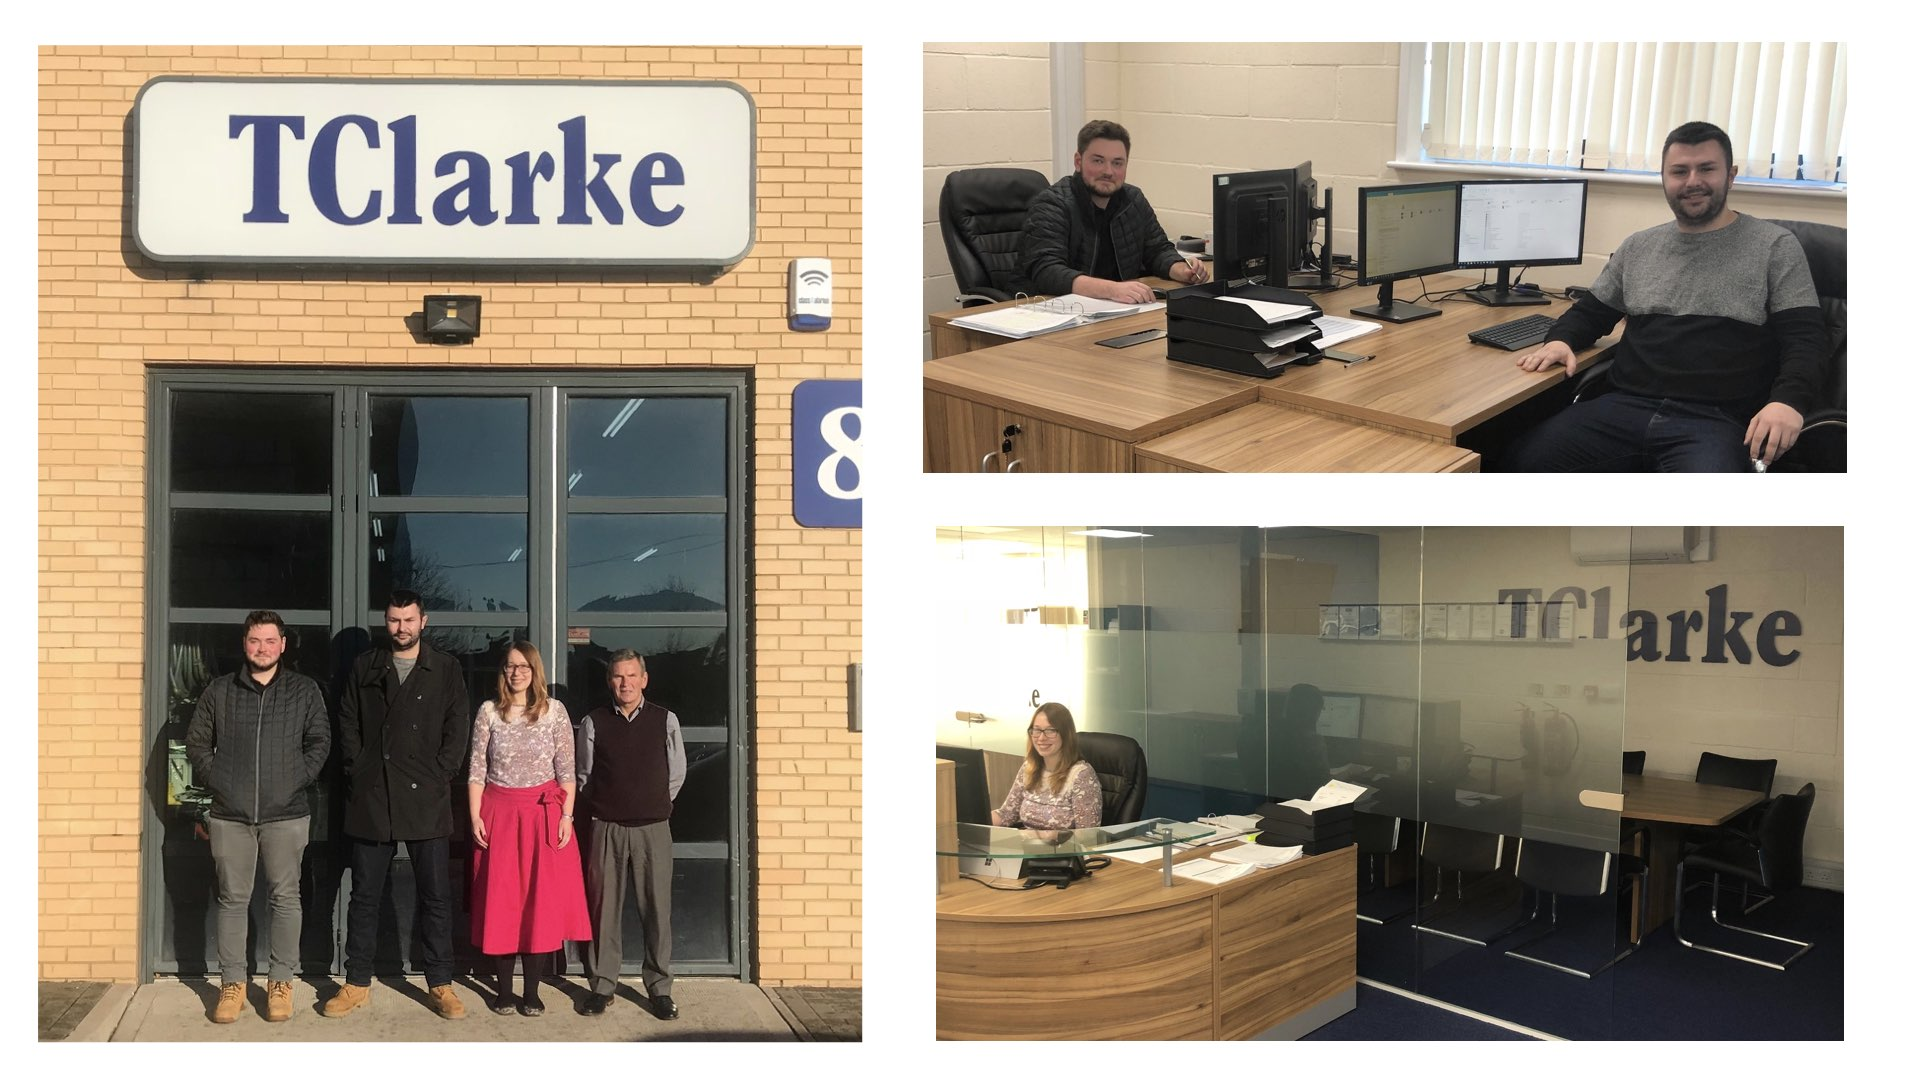 TClarke Birmingham Office up and running with Blue chip FM client list